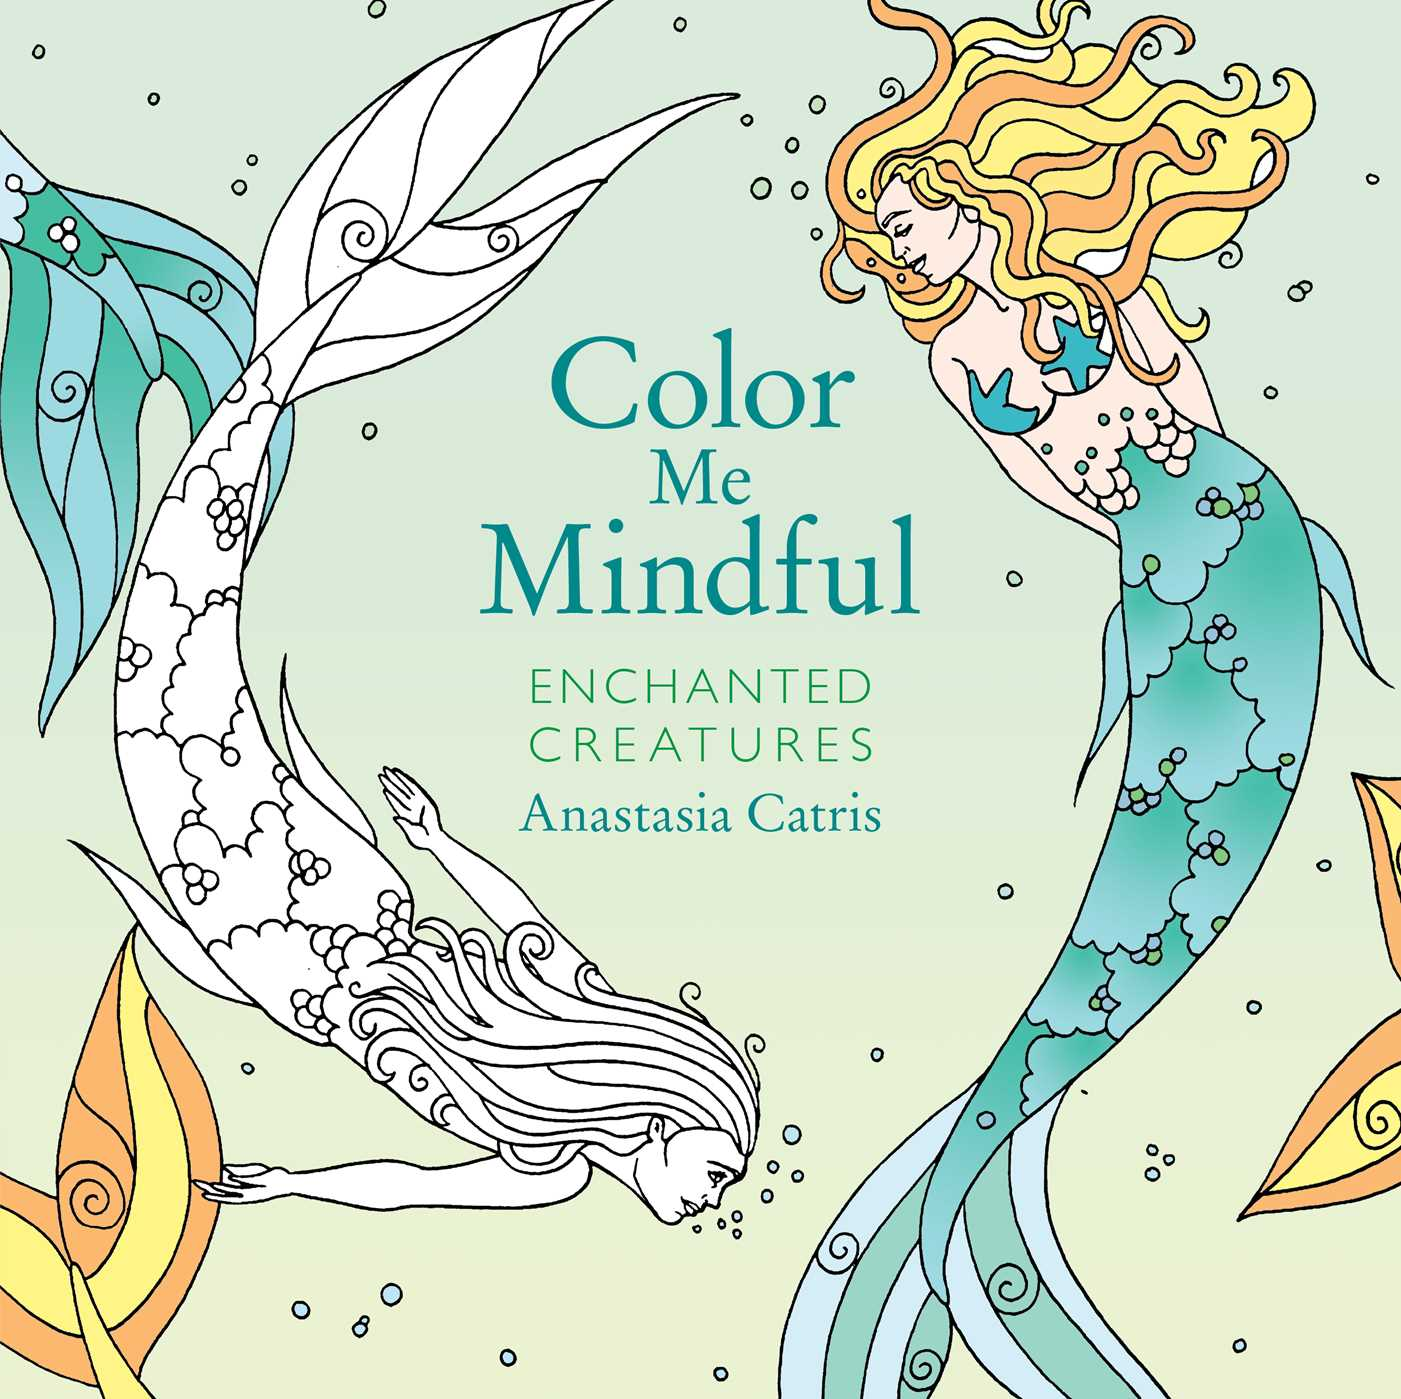 Color me mindful enchanted creatures 9781501162367 hr